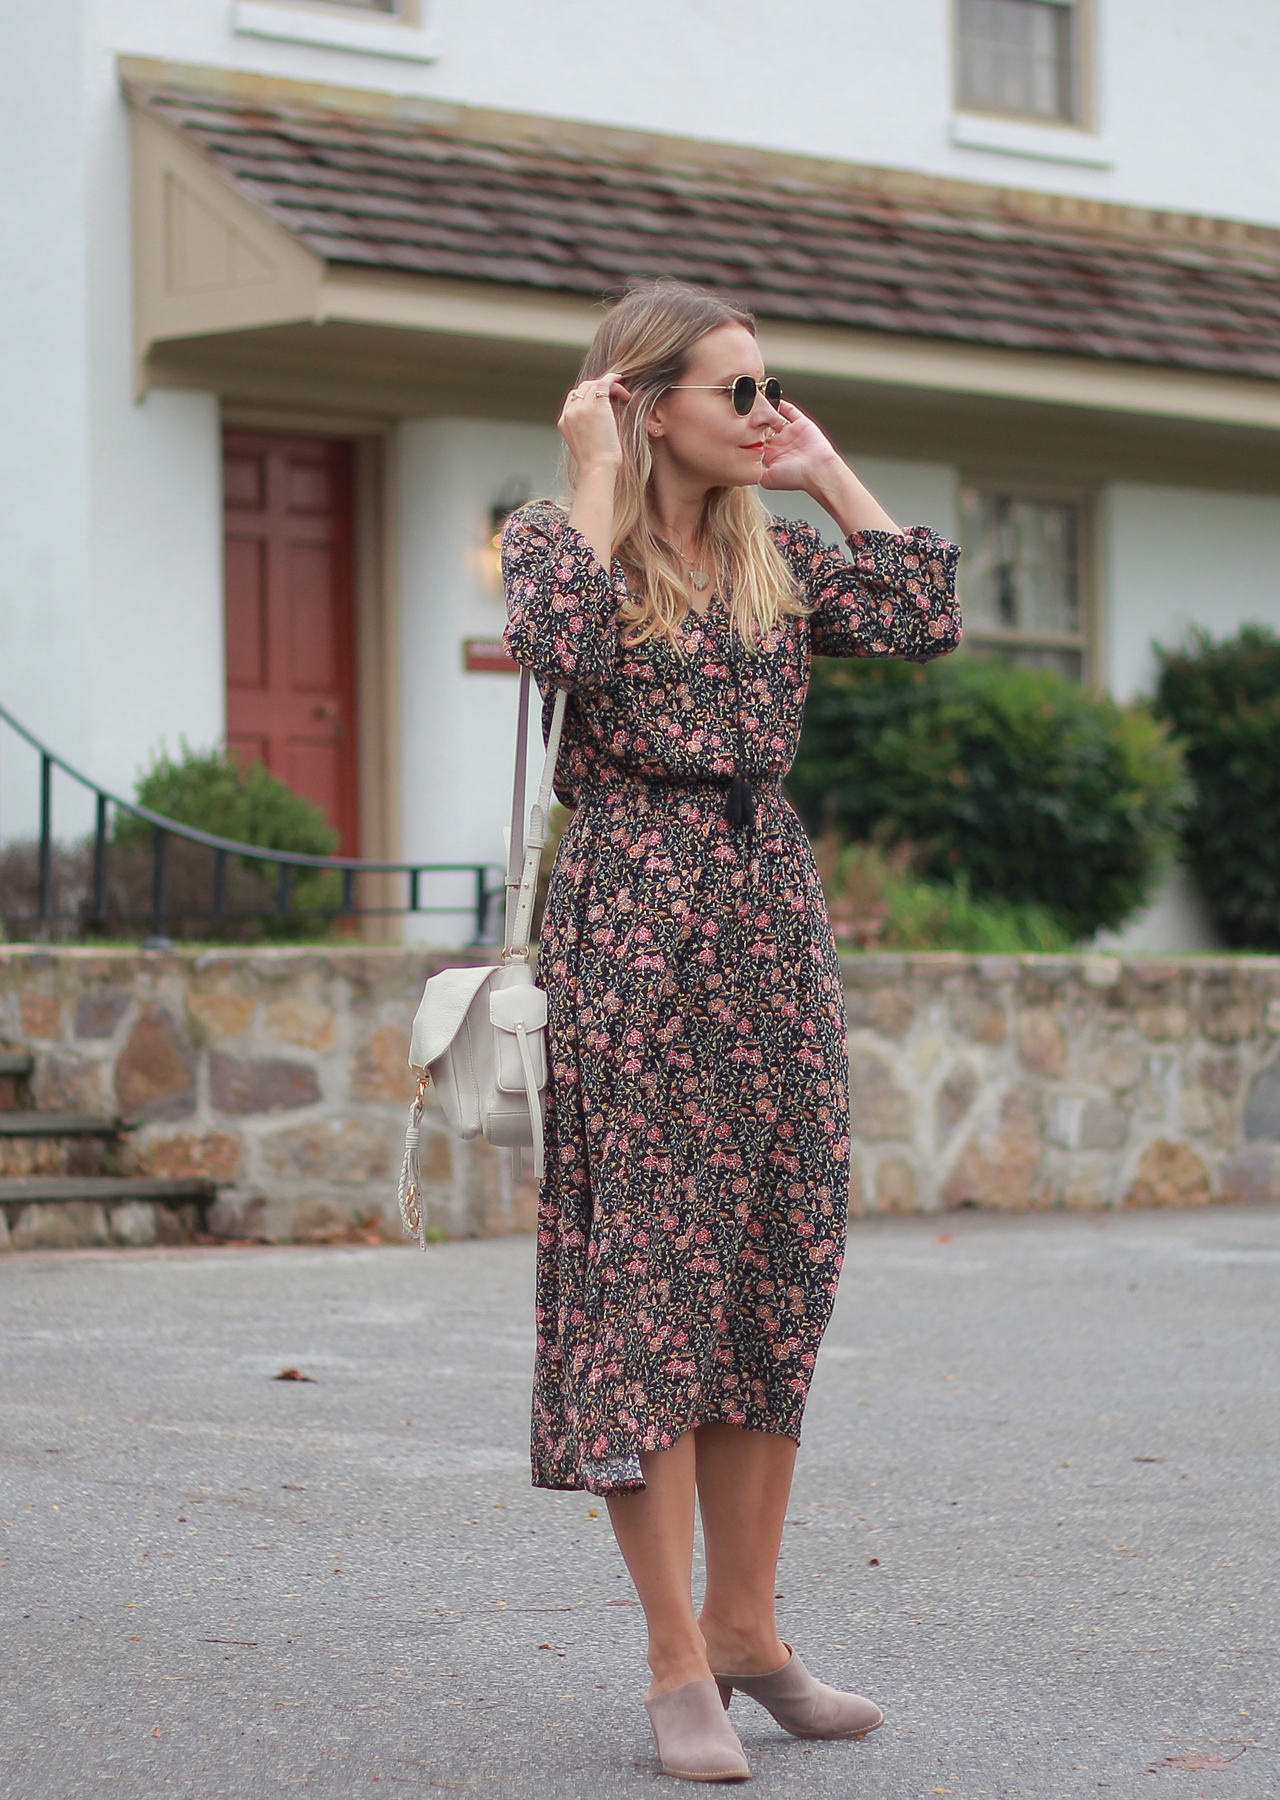 The Steele Maiden: Fall Floral Maxi with Old Navy